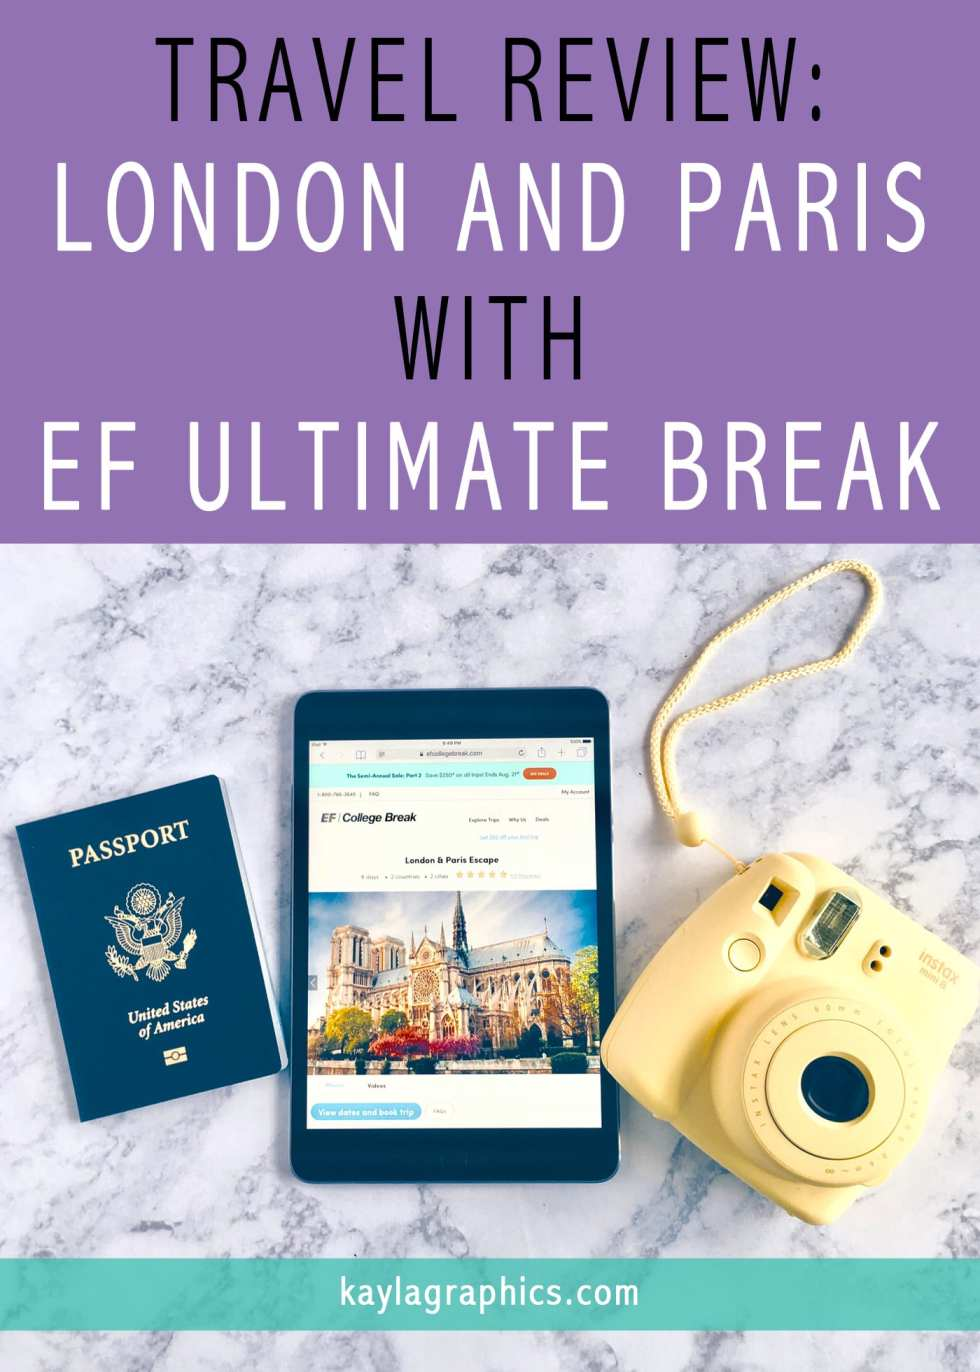 Travel Review London and Paris with EF Ultimate Break